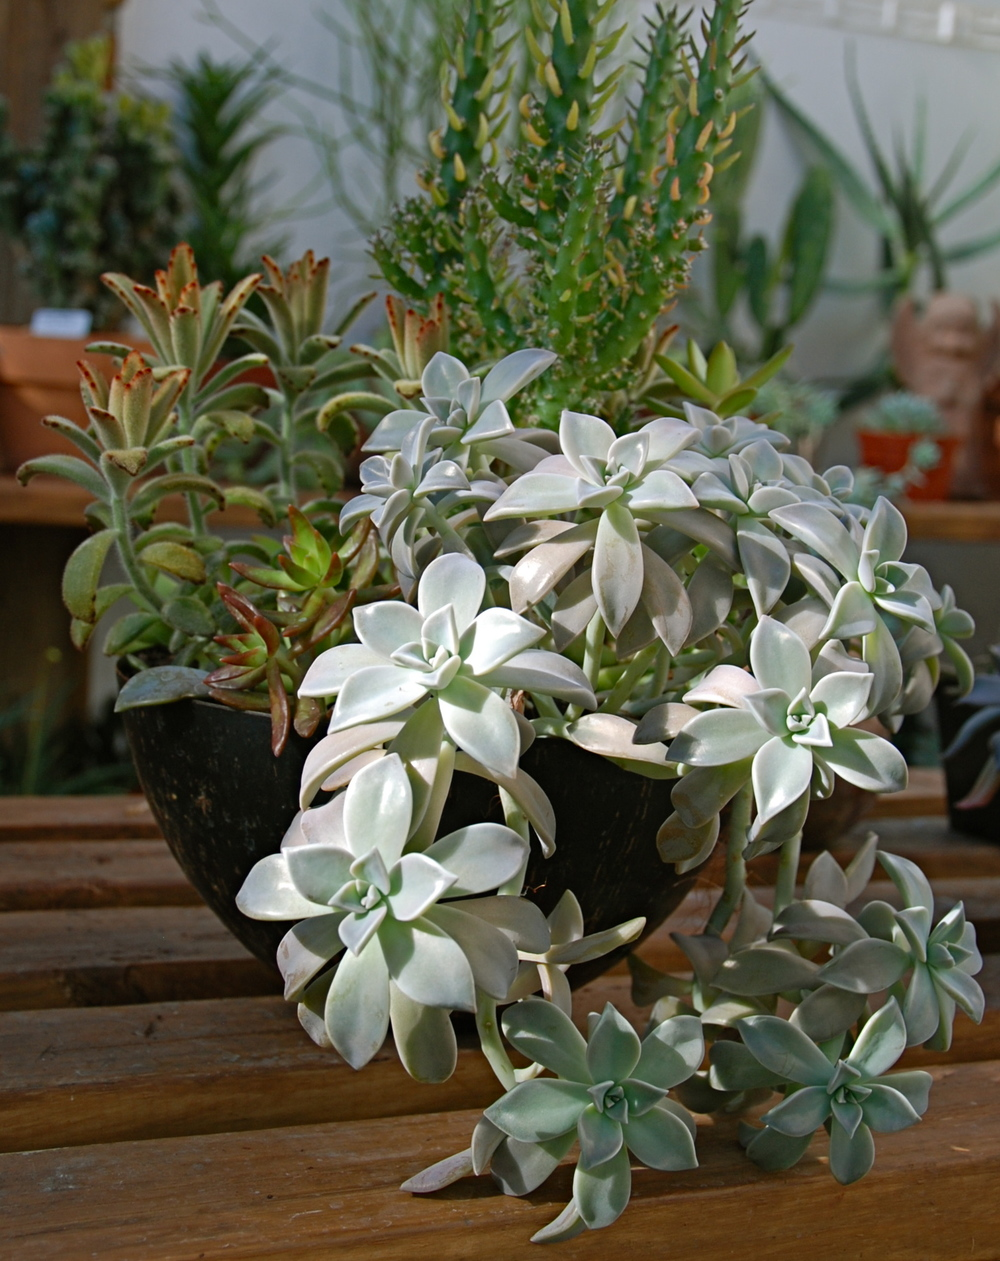 Graptopetalum paraguayense 'Ghost Plant', sedum, & cacti  in copper container